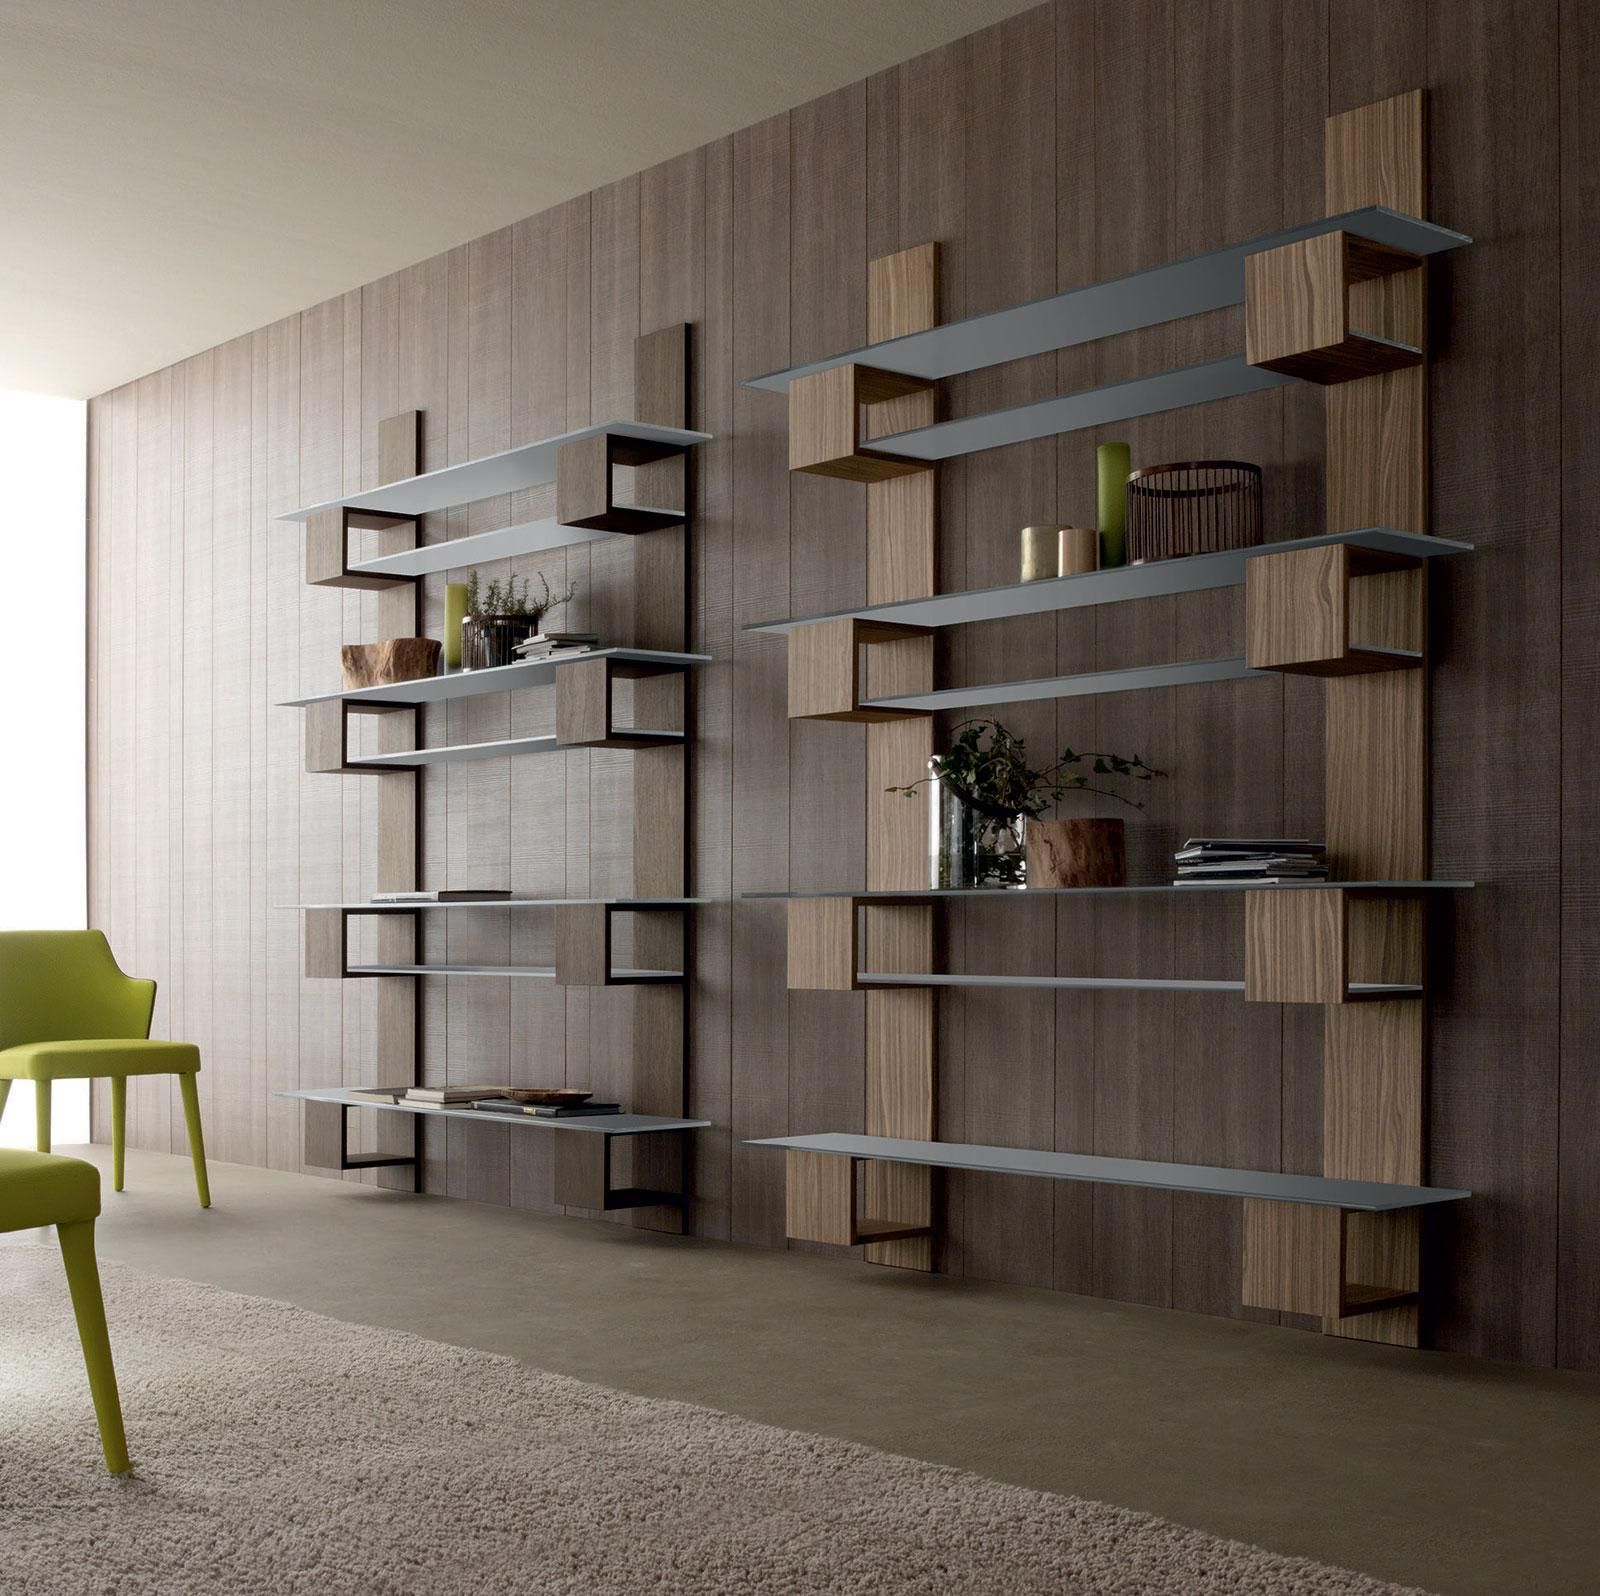 infinity meuble biblioth que mural tag res idd. Black Bedroom Furniture Sets. Home Design Ideas